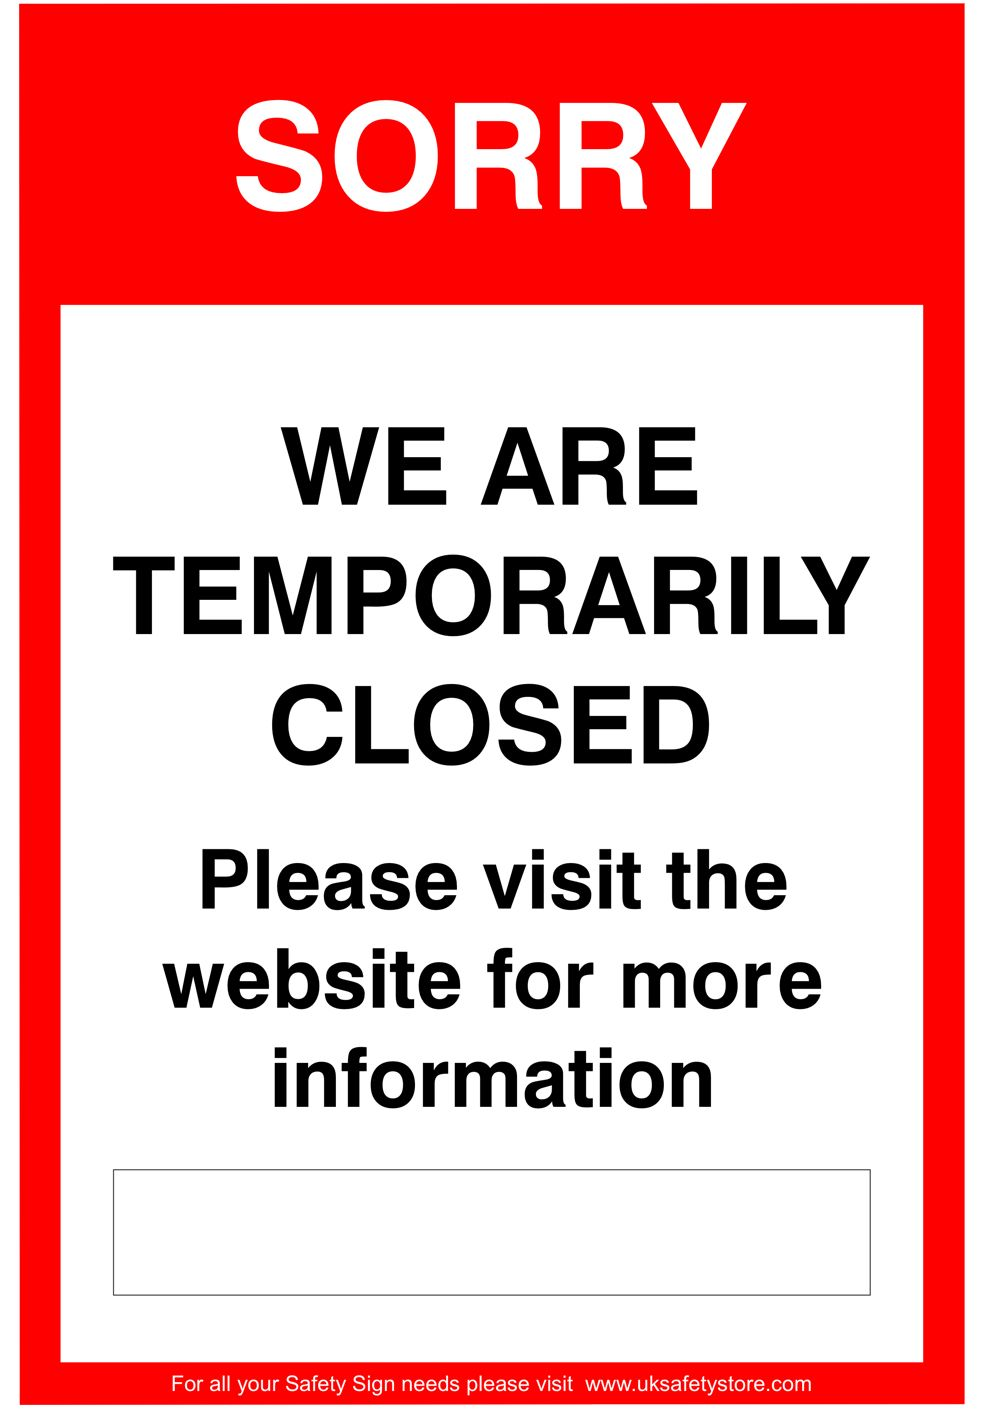 Free Social Distancing Sign Template - Sorry we are closed visit our website Sign